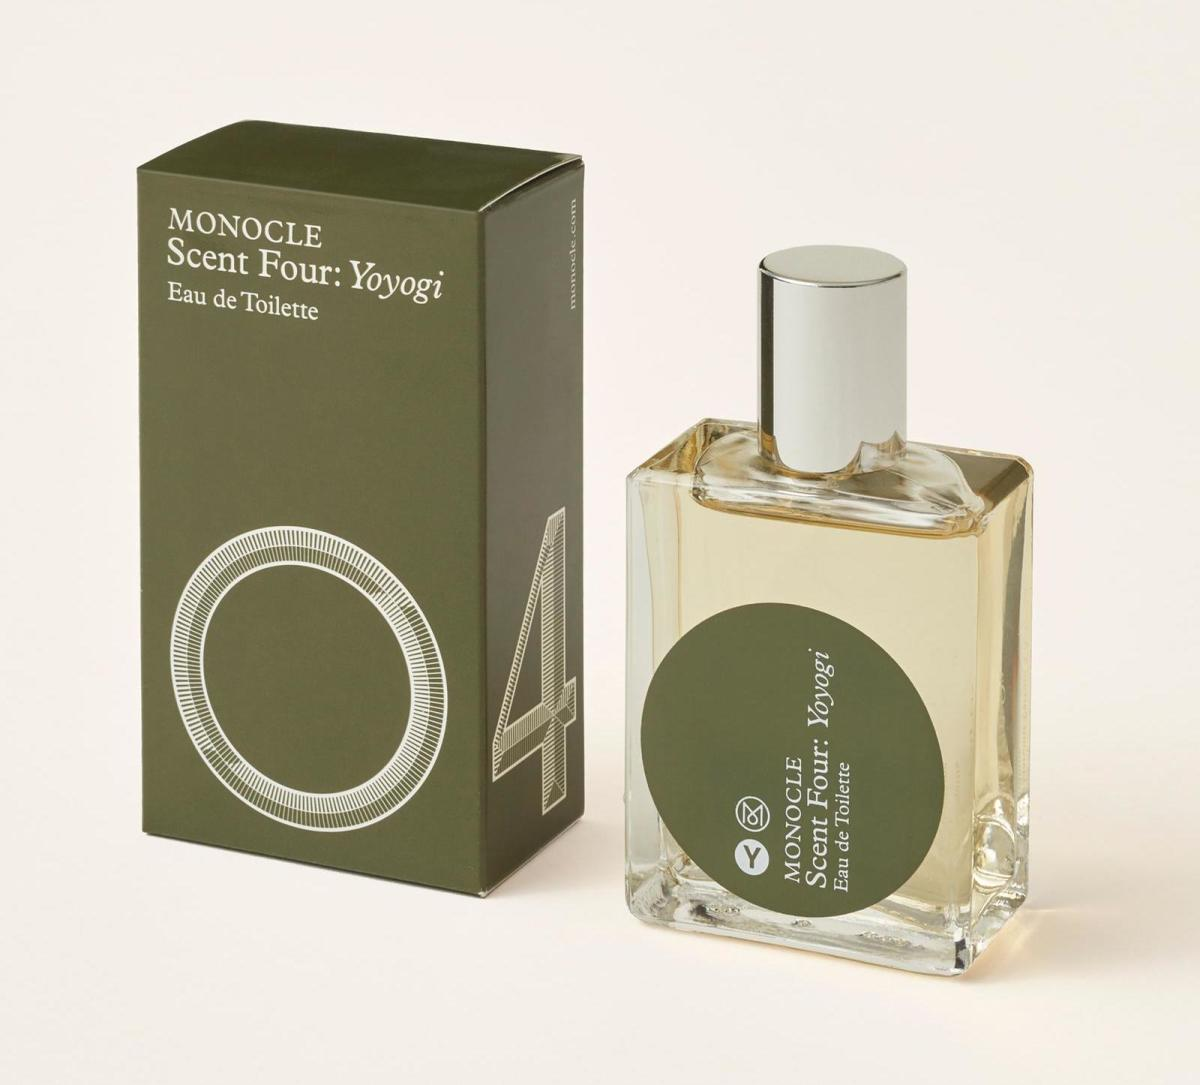 Monocle Scent Four: Yoyogi